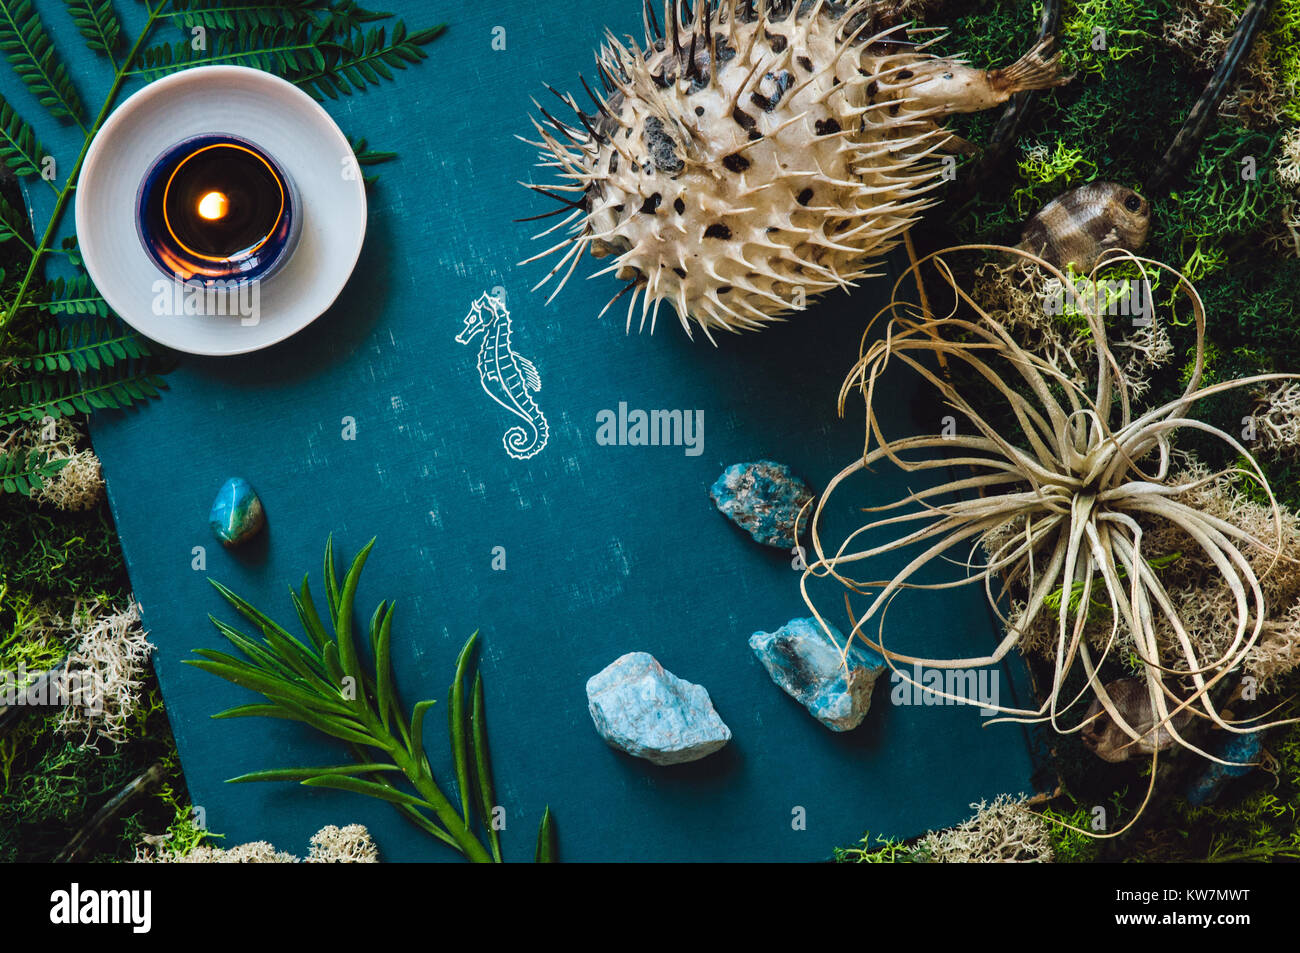 Taxidermy Puffer Fish with Moss and Blue Apatite Stones - Stock Image